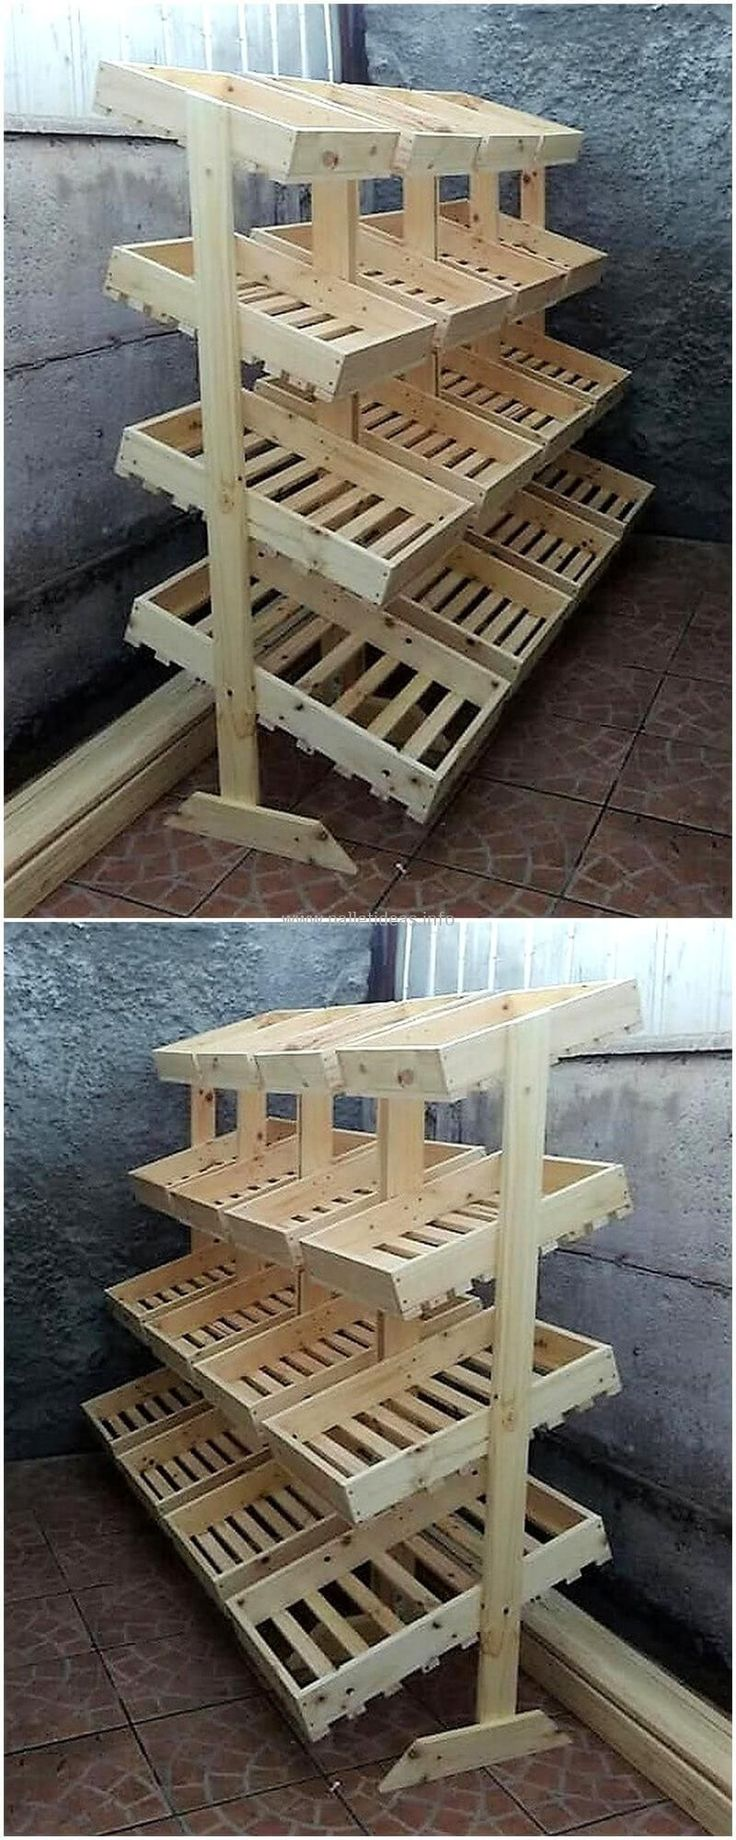 reused wood pallet fruit racks #Palletfurniture